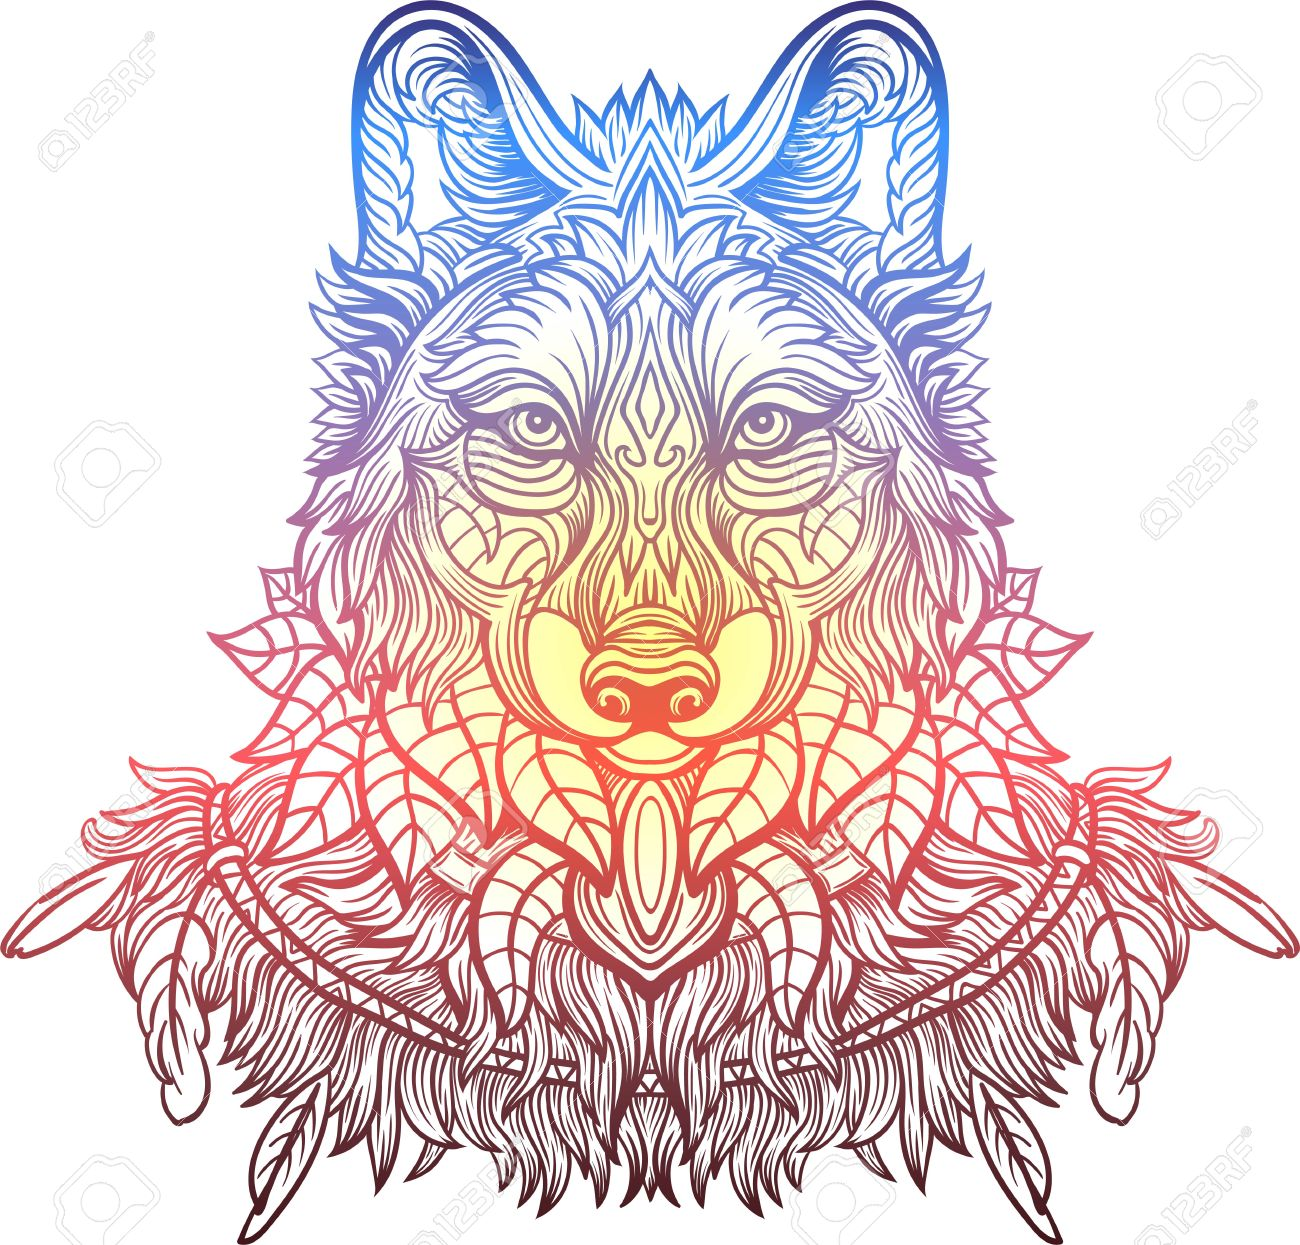 Hand Drawn Wolf Side View With Ethnic Floral Doodle Pattern Coloring Page